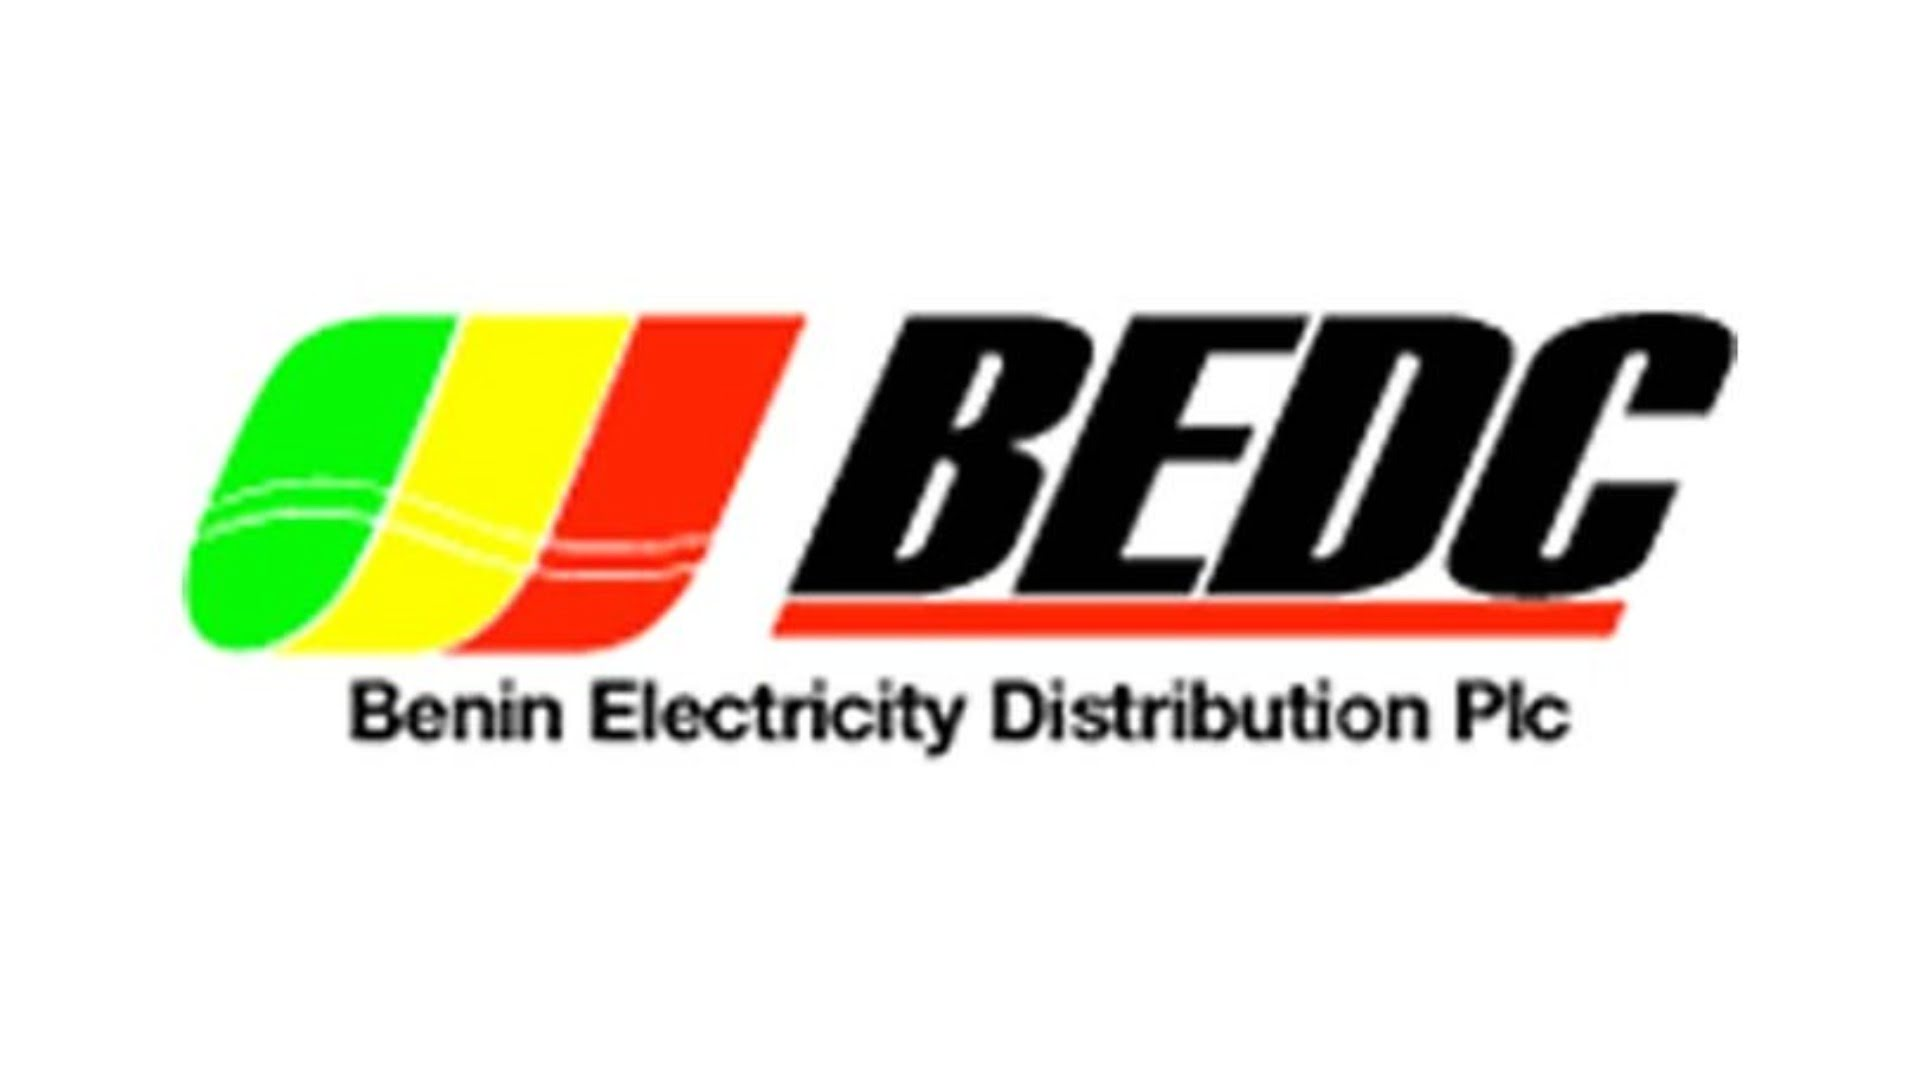 BEDC1 - BEDC to roll out 200,200 meters in Delta